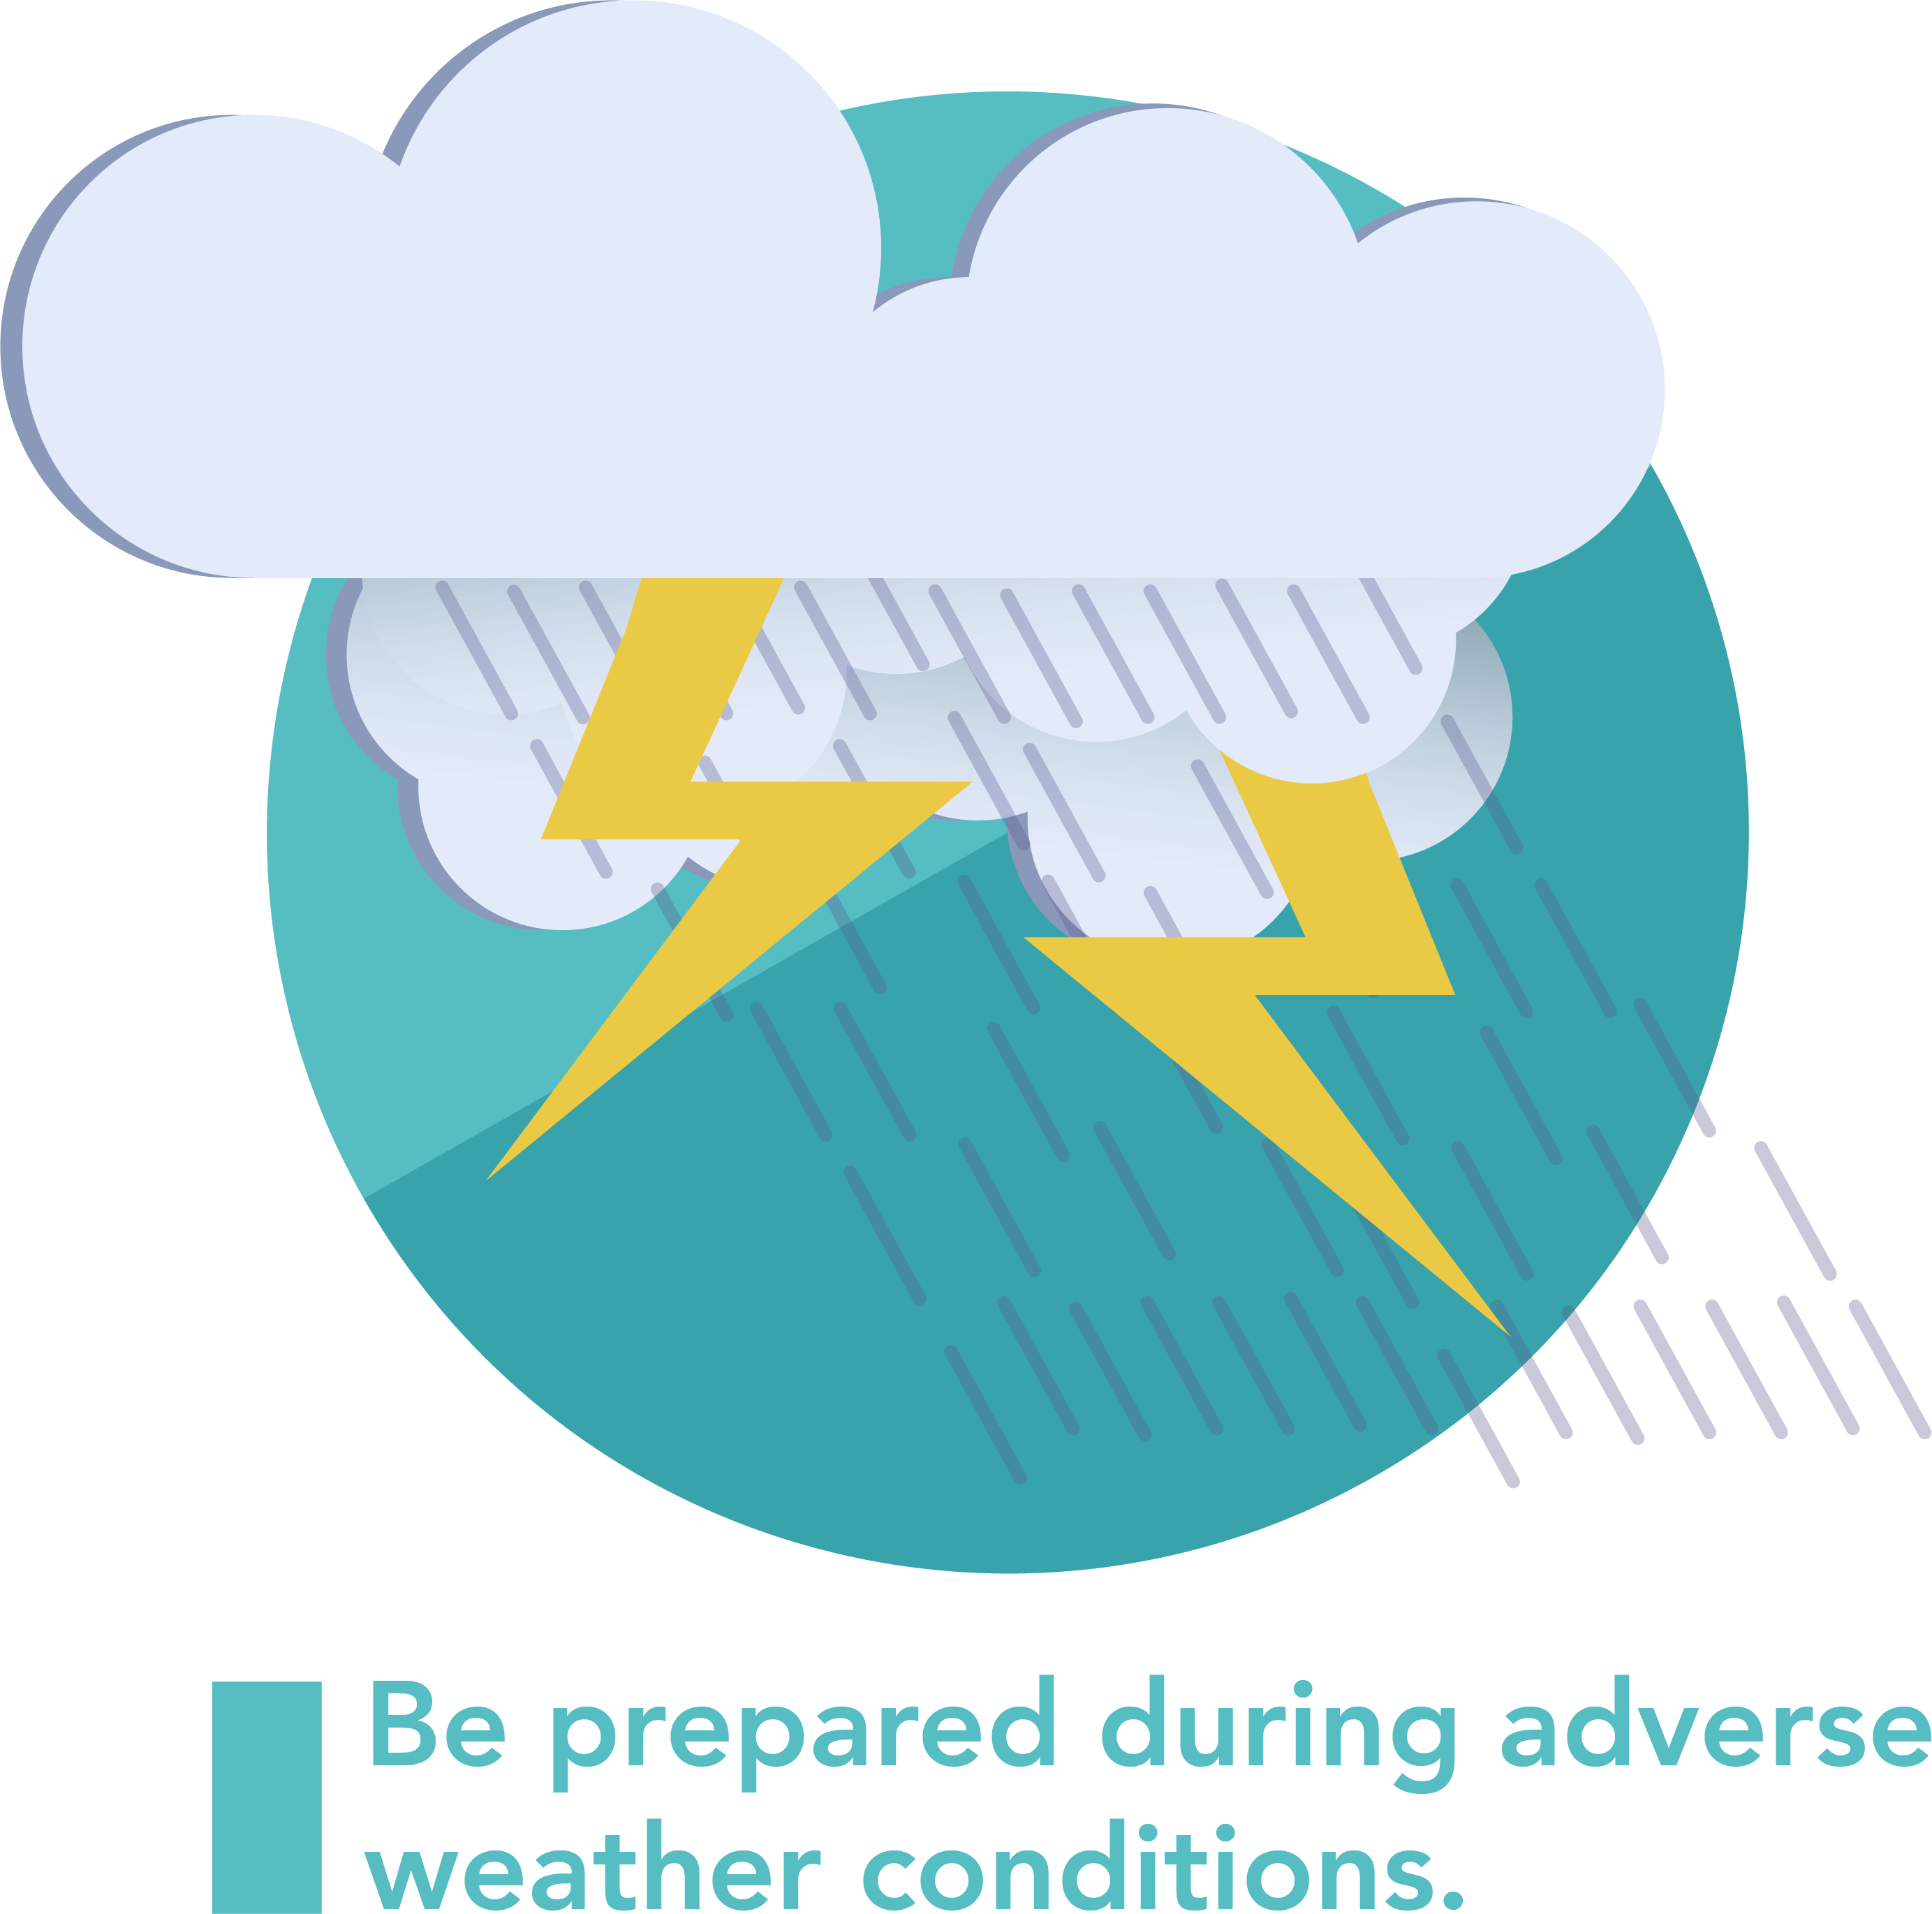 A graphic symbolizng a storm and being prepared